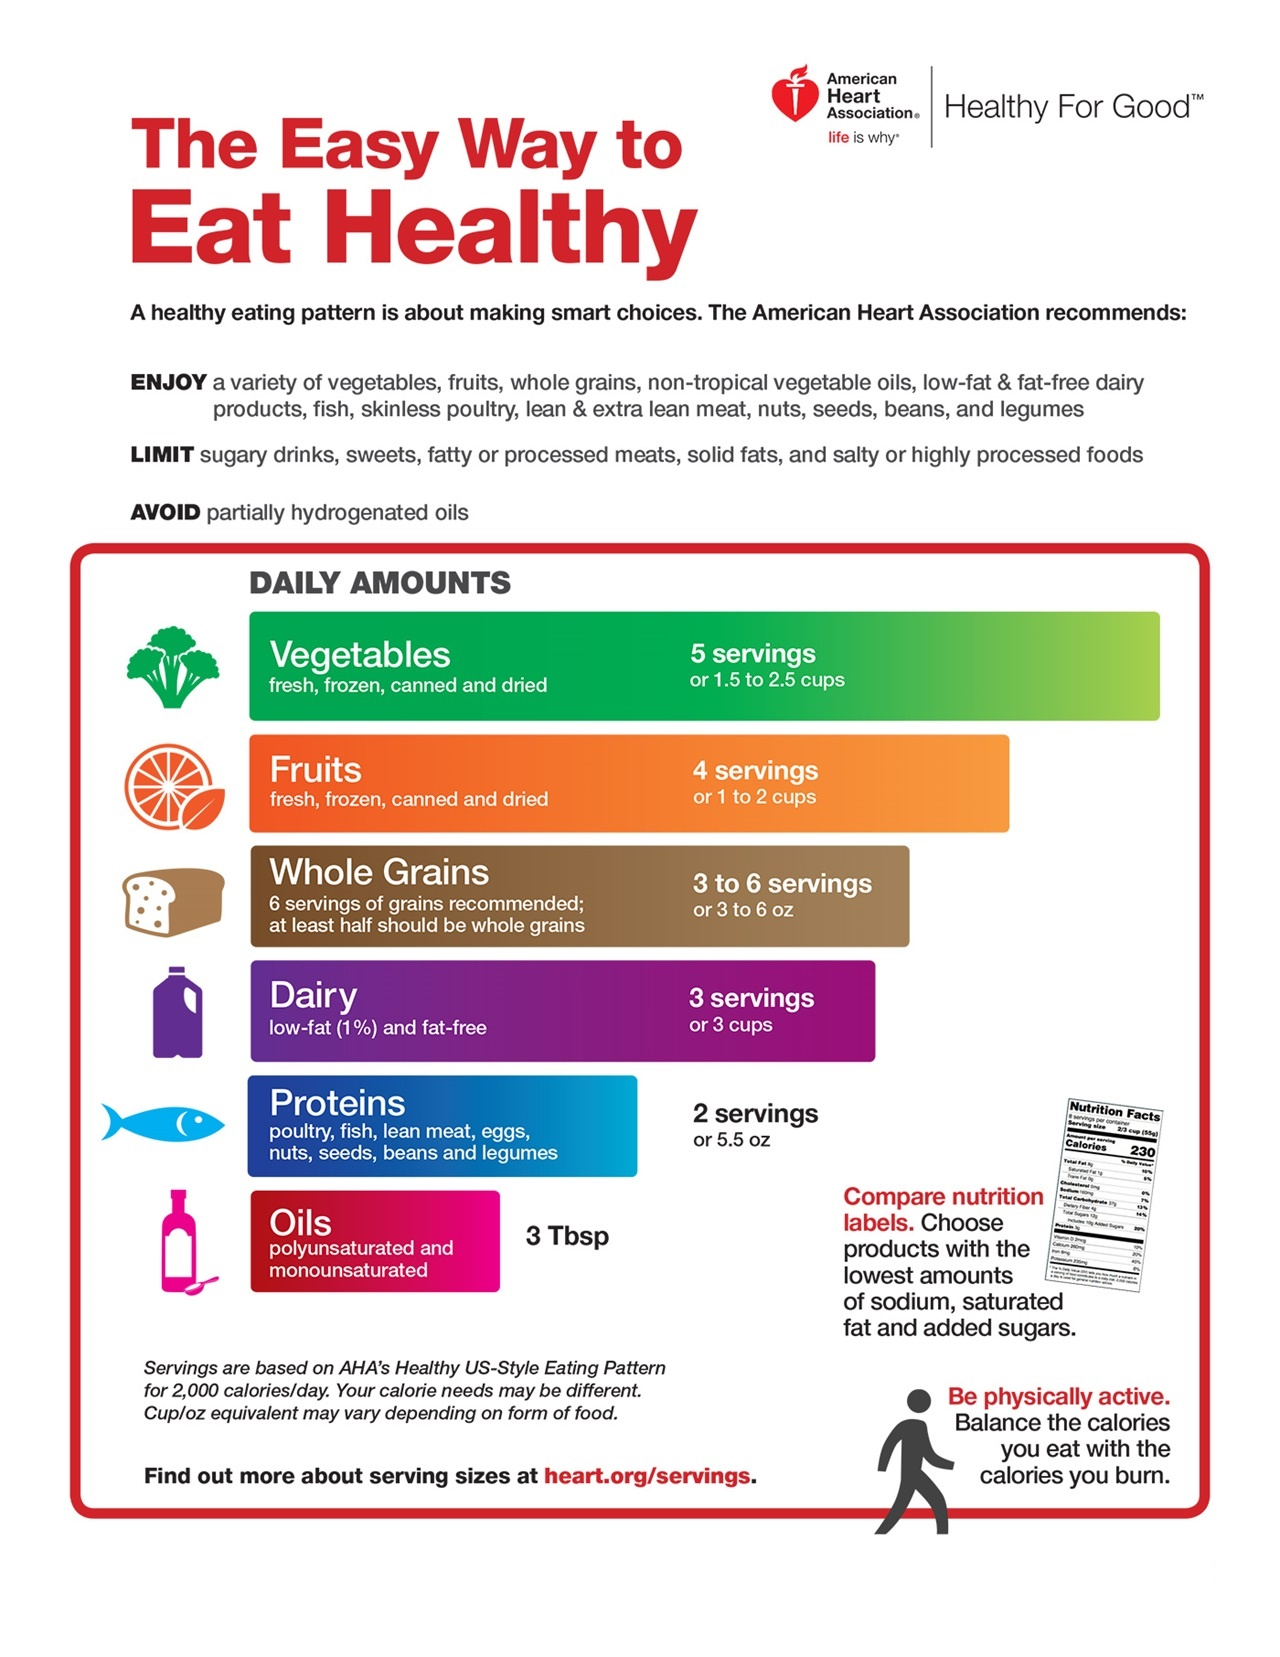 The Easy Way to Eat Healthy tips from American Heart Association